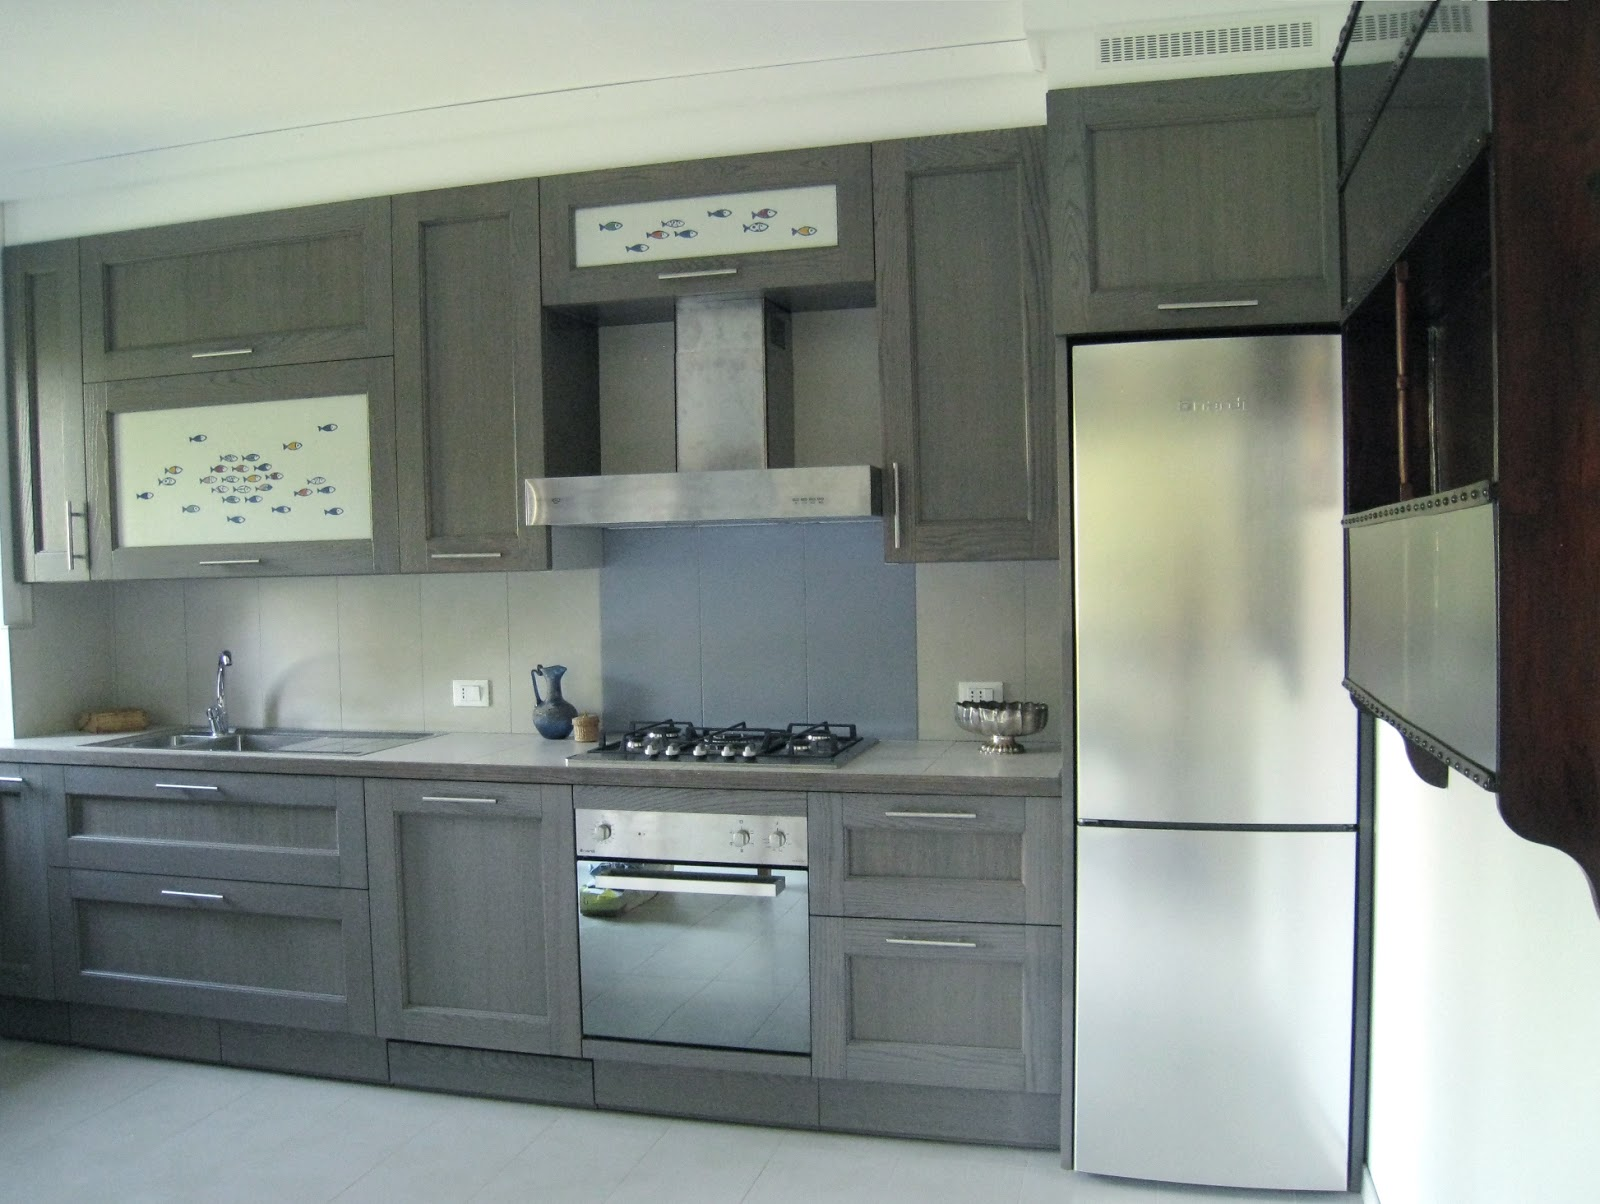 Cucine 3 Metri Lineari. Gallery Of With Cucine 3 Metri ...